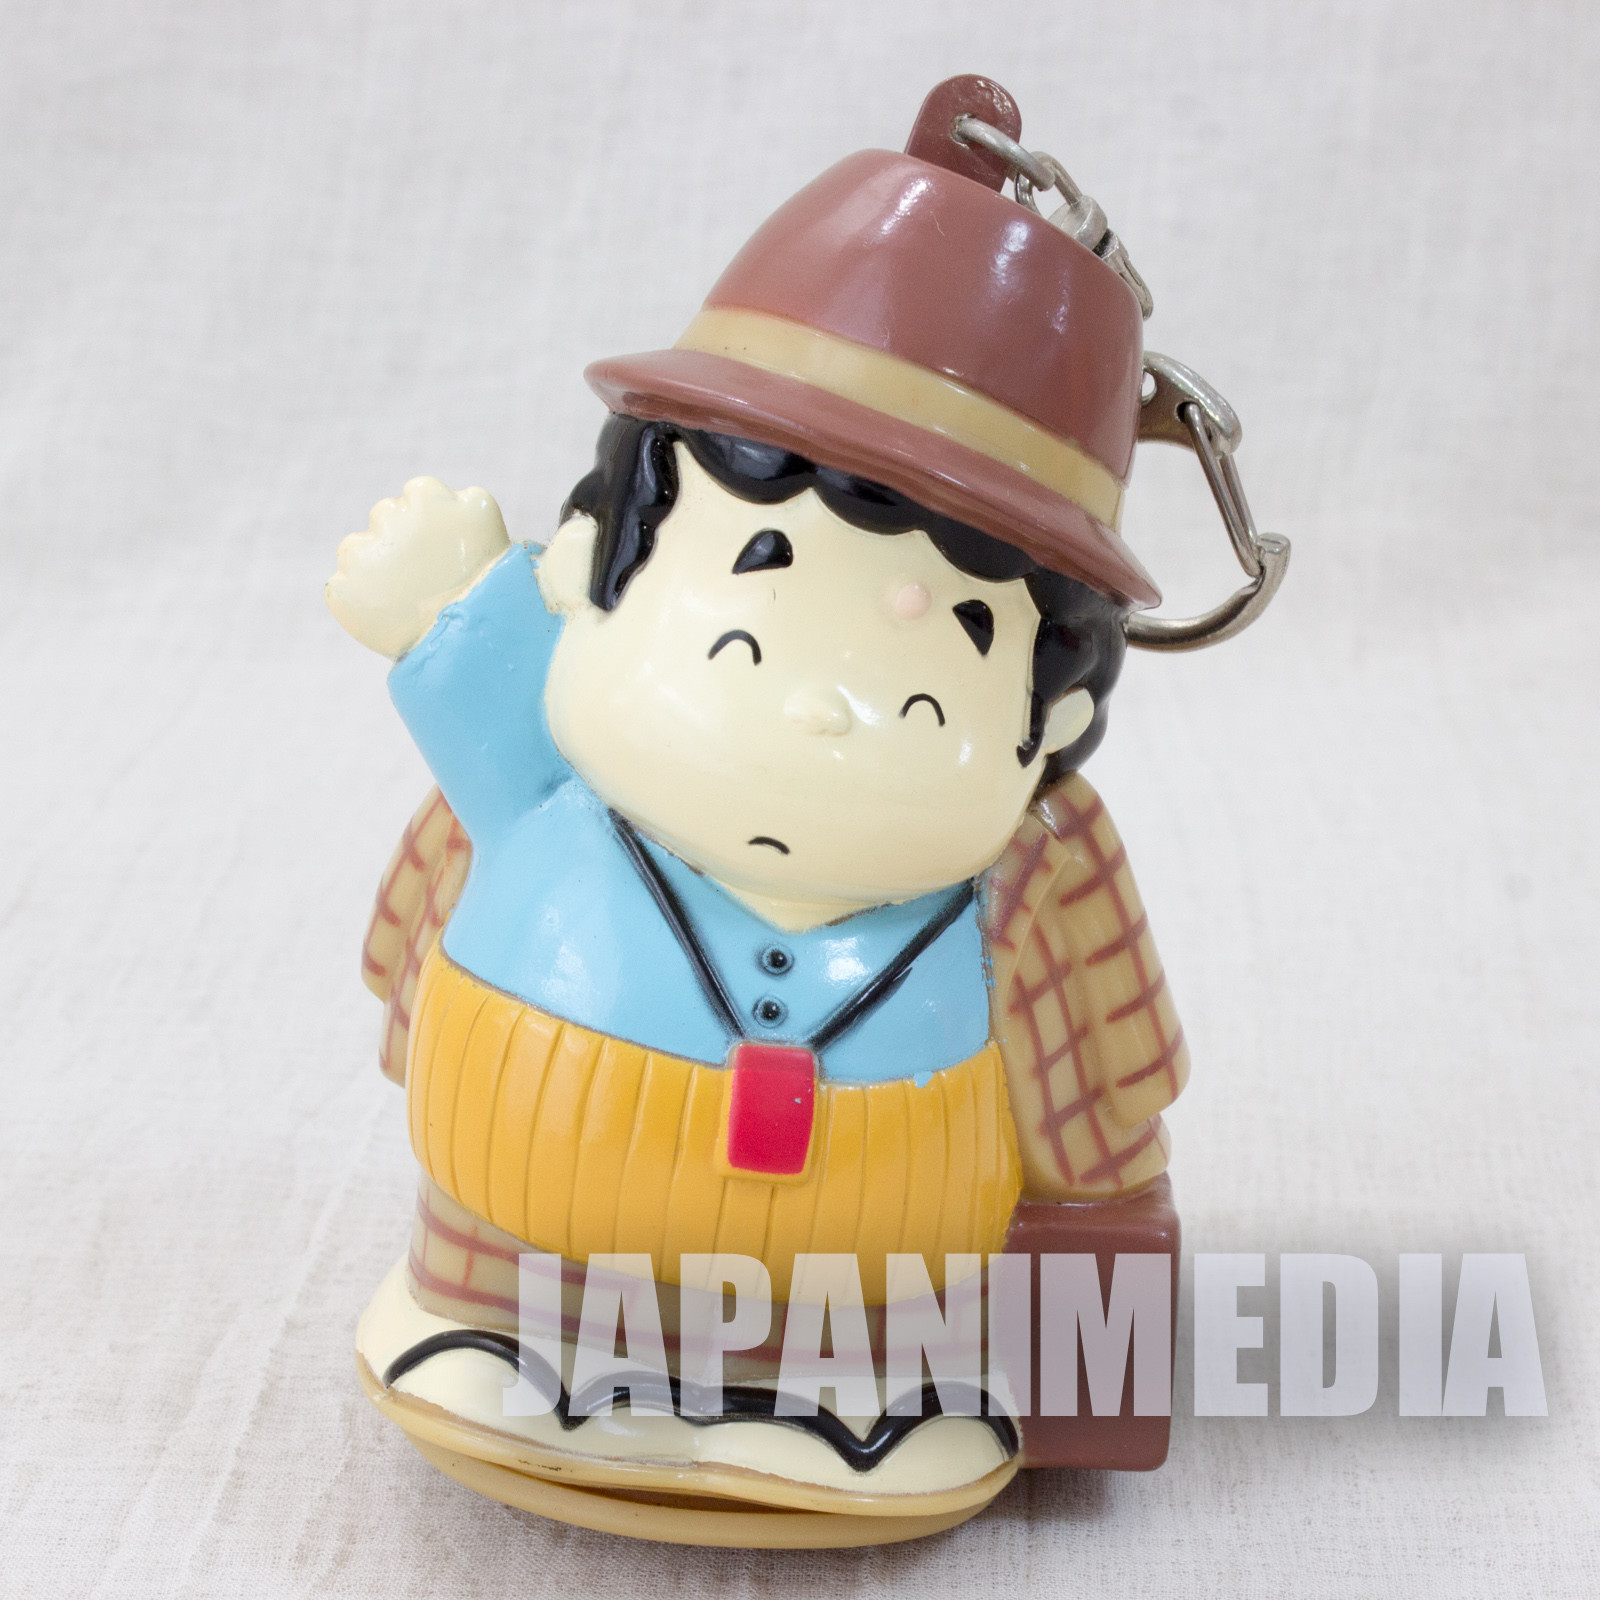 It's tough being a man Otoko Wa Tsurai Yo TORA-san Soft Vinyl Figure Key Chain